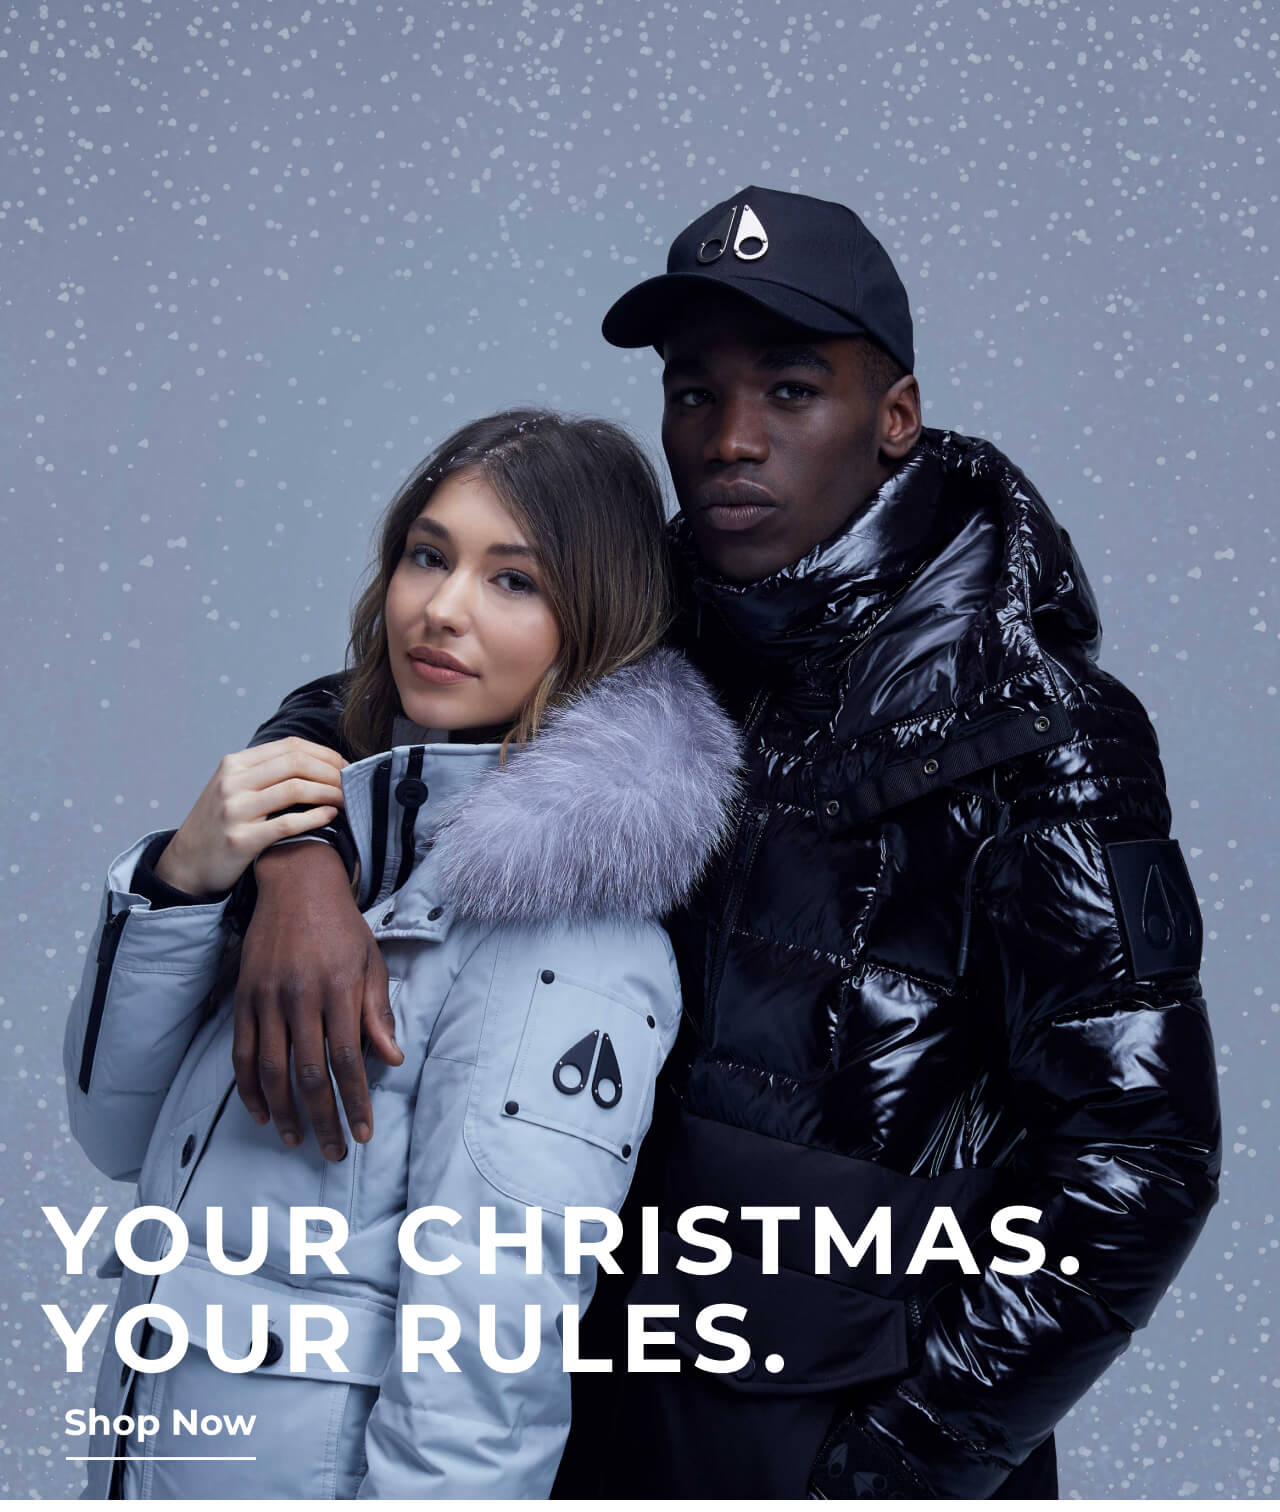 YOUR CHRISTMAS YOUR RULES